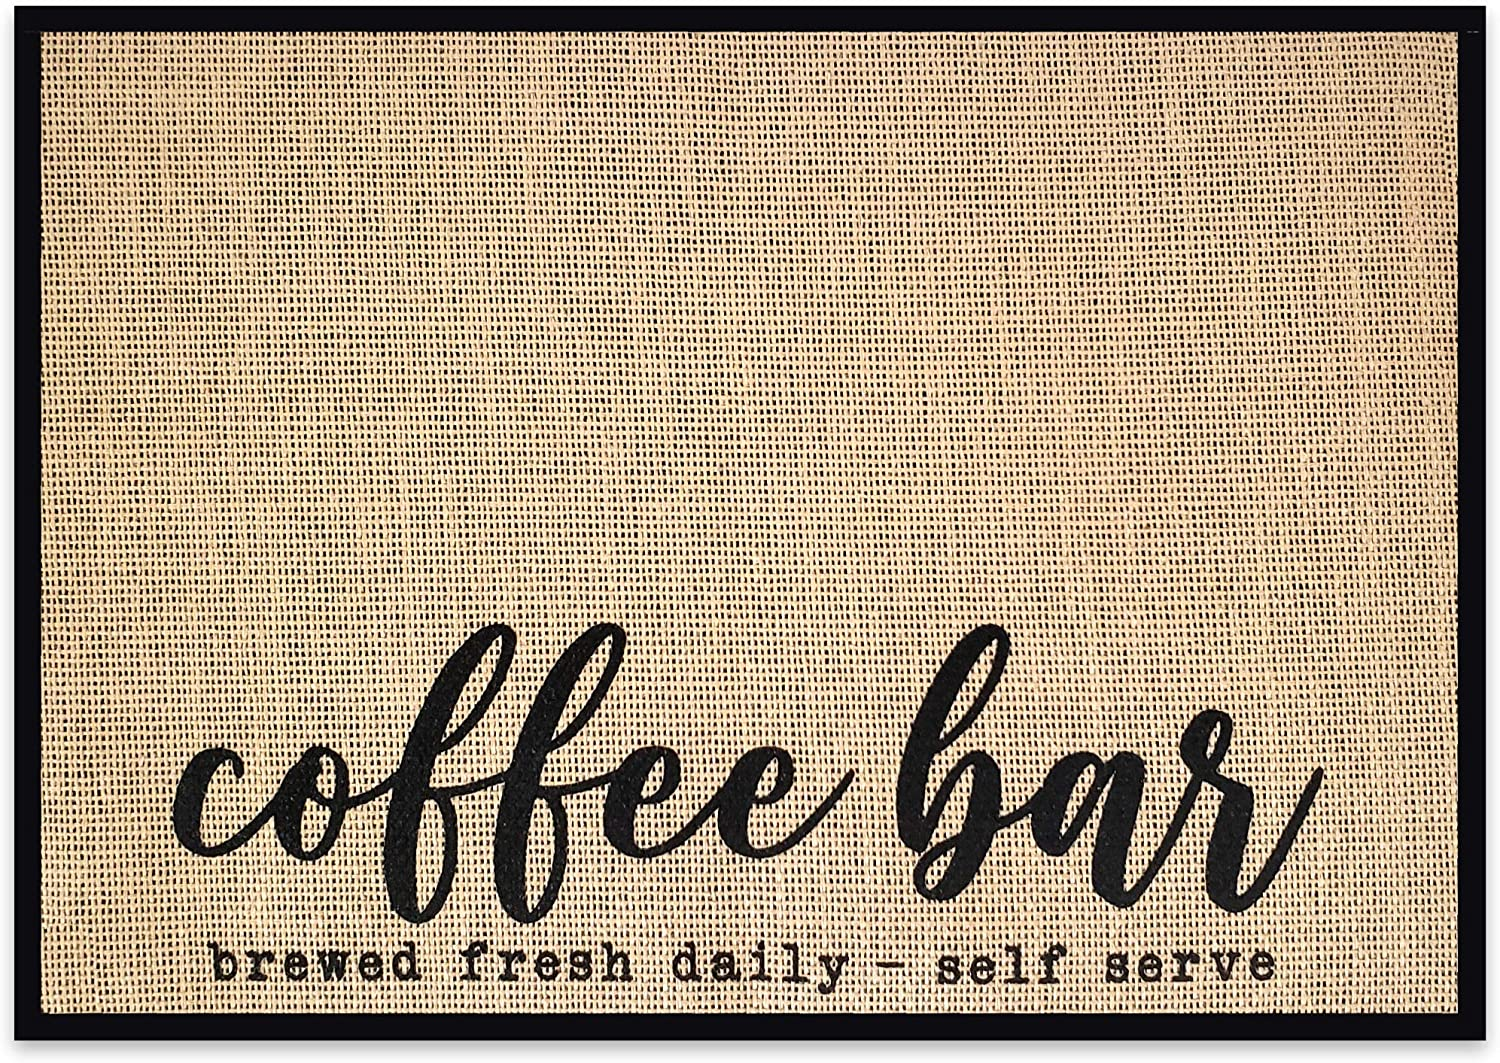 "New Mungo Coffee Bar Mat - Coffee Bar Decor for Coffee Station - Coffee Bar Accessories for Coffee Decor - Brewed Fresh Daily Self Serve Coffee Mat - Burlap Placemat with Fabric Backing - 20""x14"""